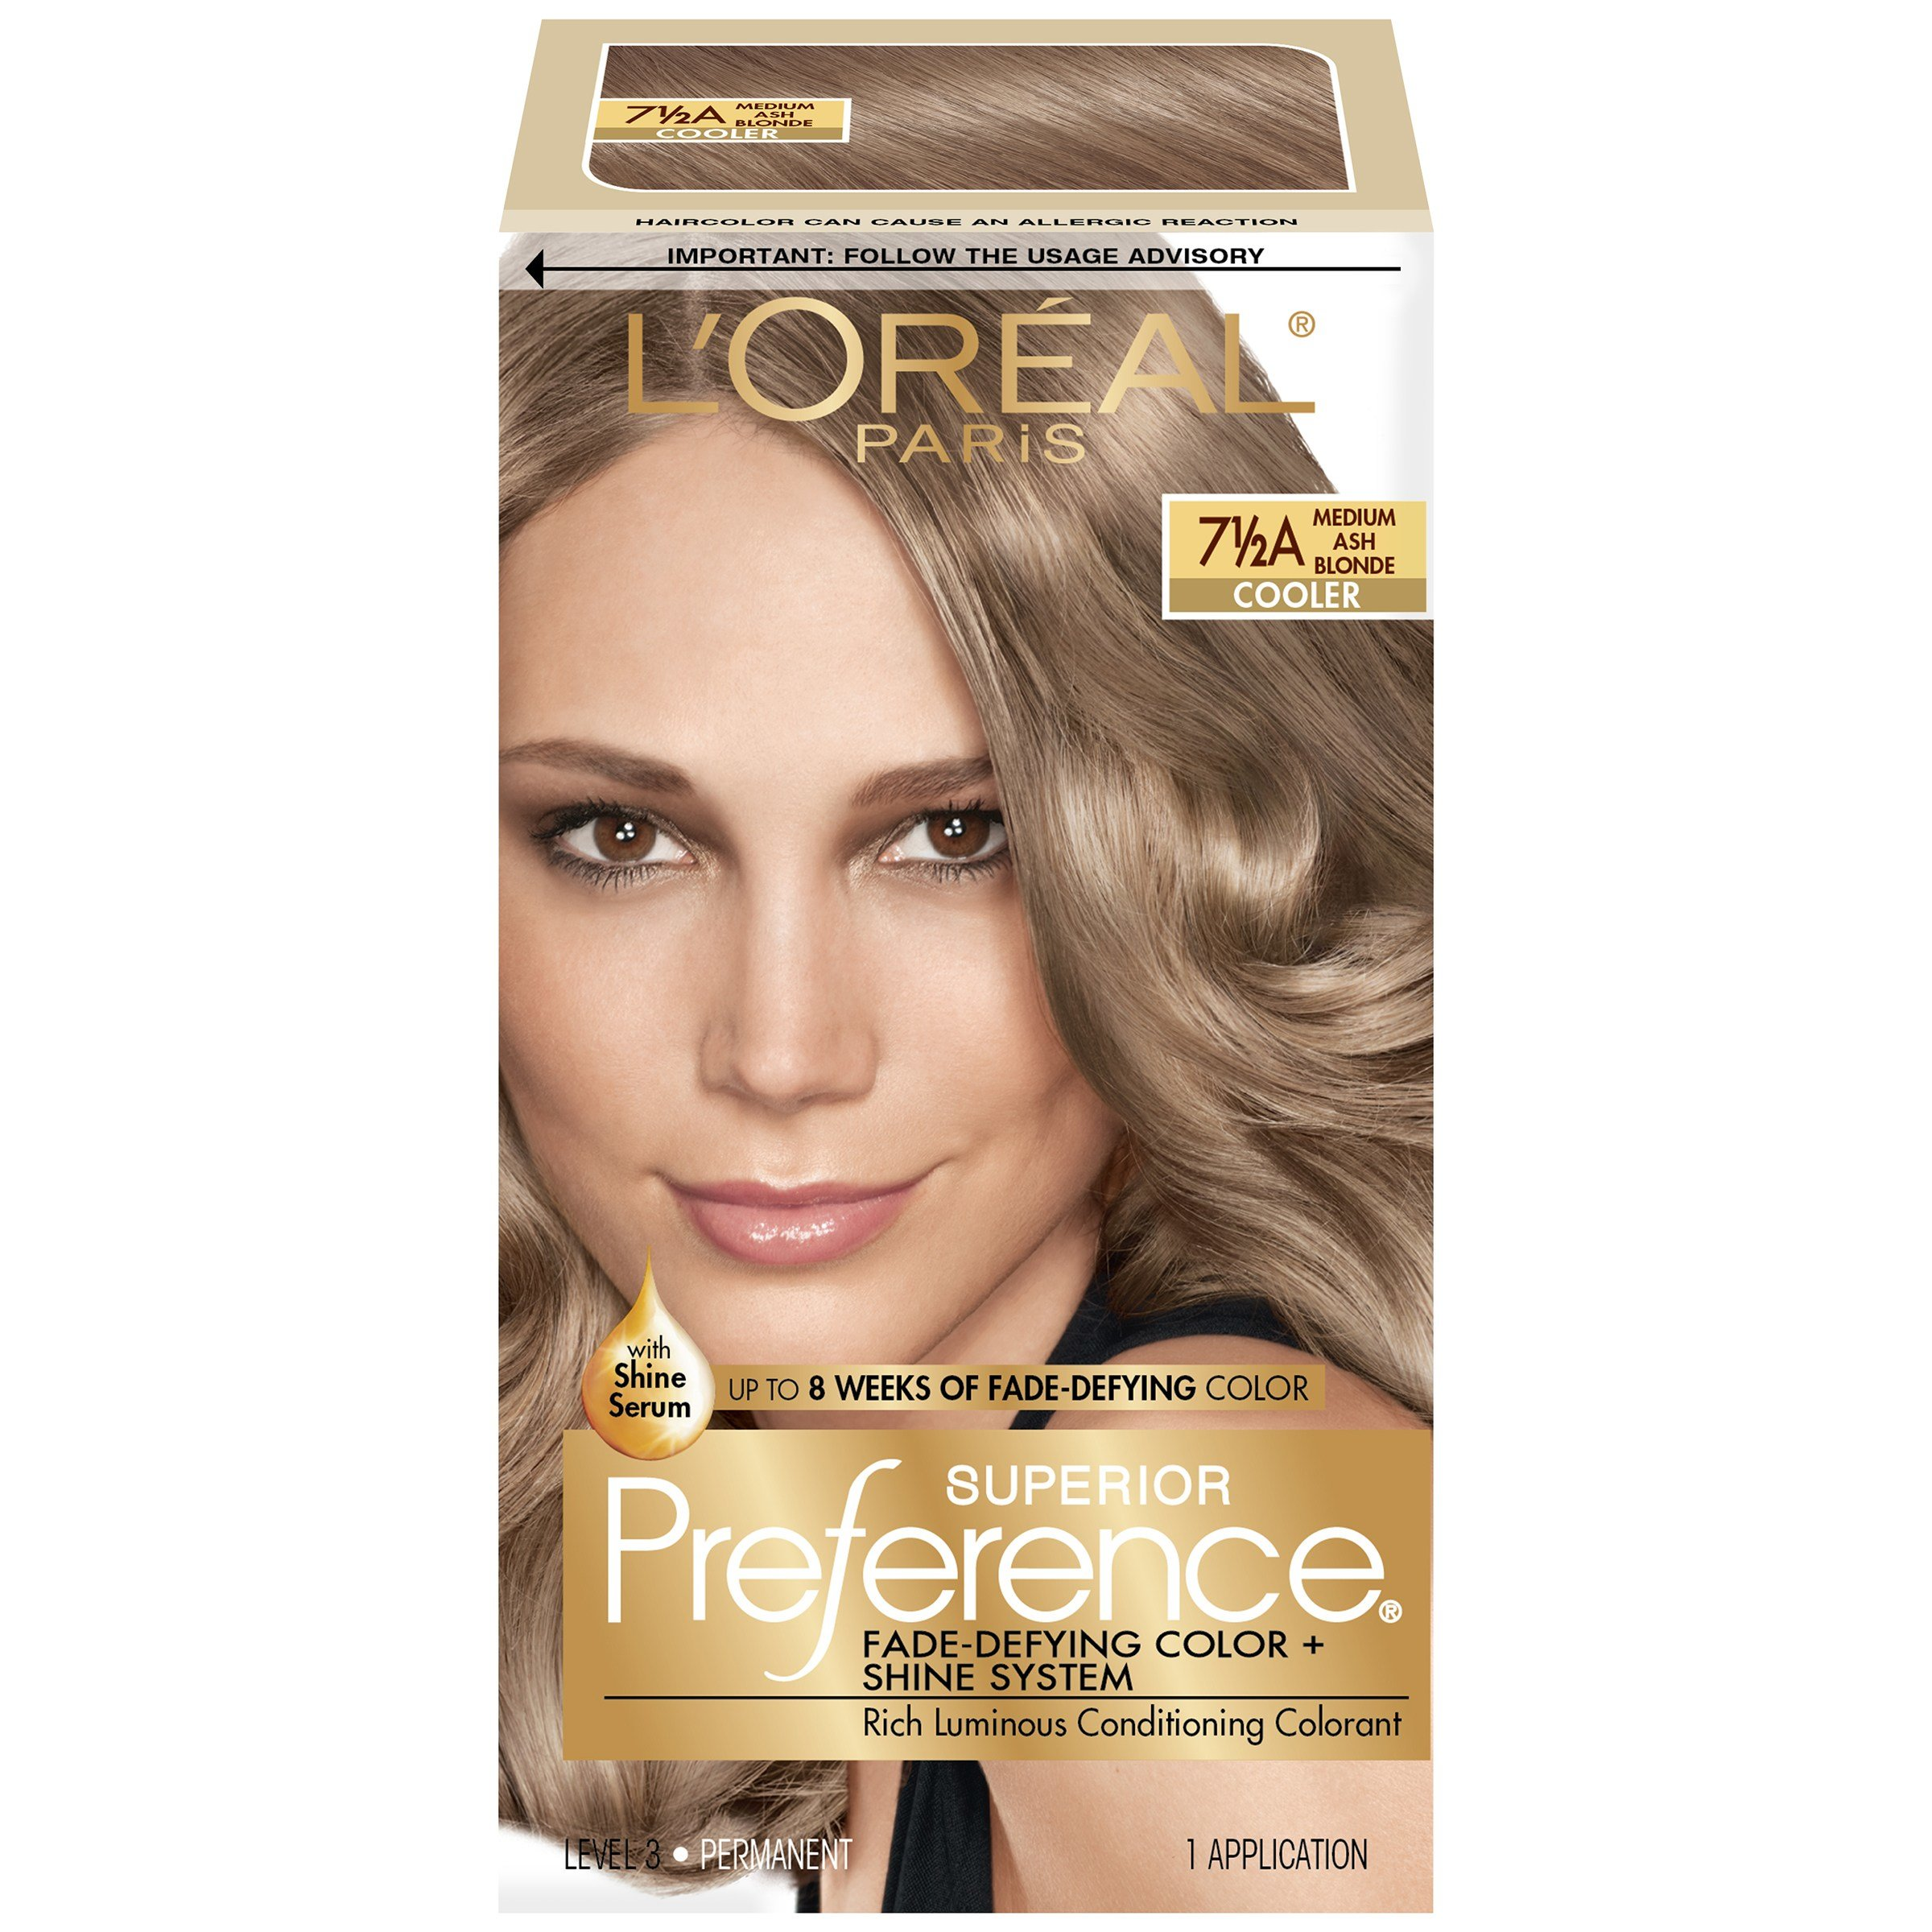 New L Oreal 7 1 2A Cooler Medium Ash Blonde Hair Color 1 Kt Ideas With Pictures